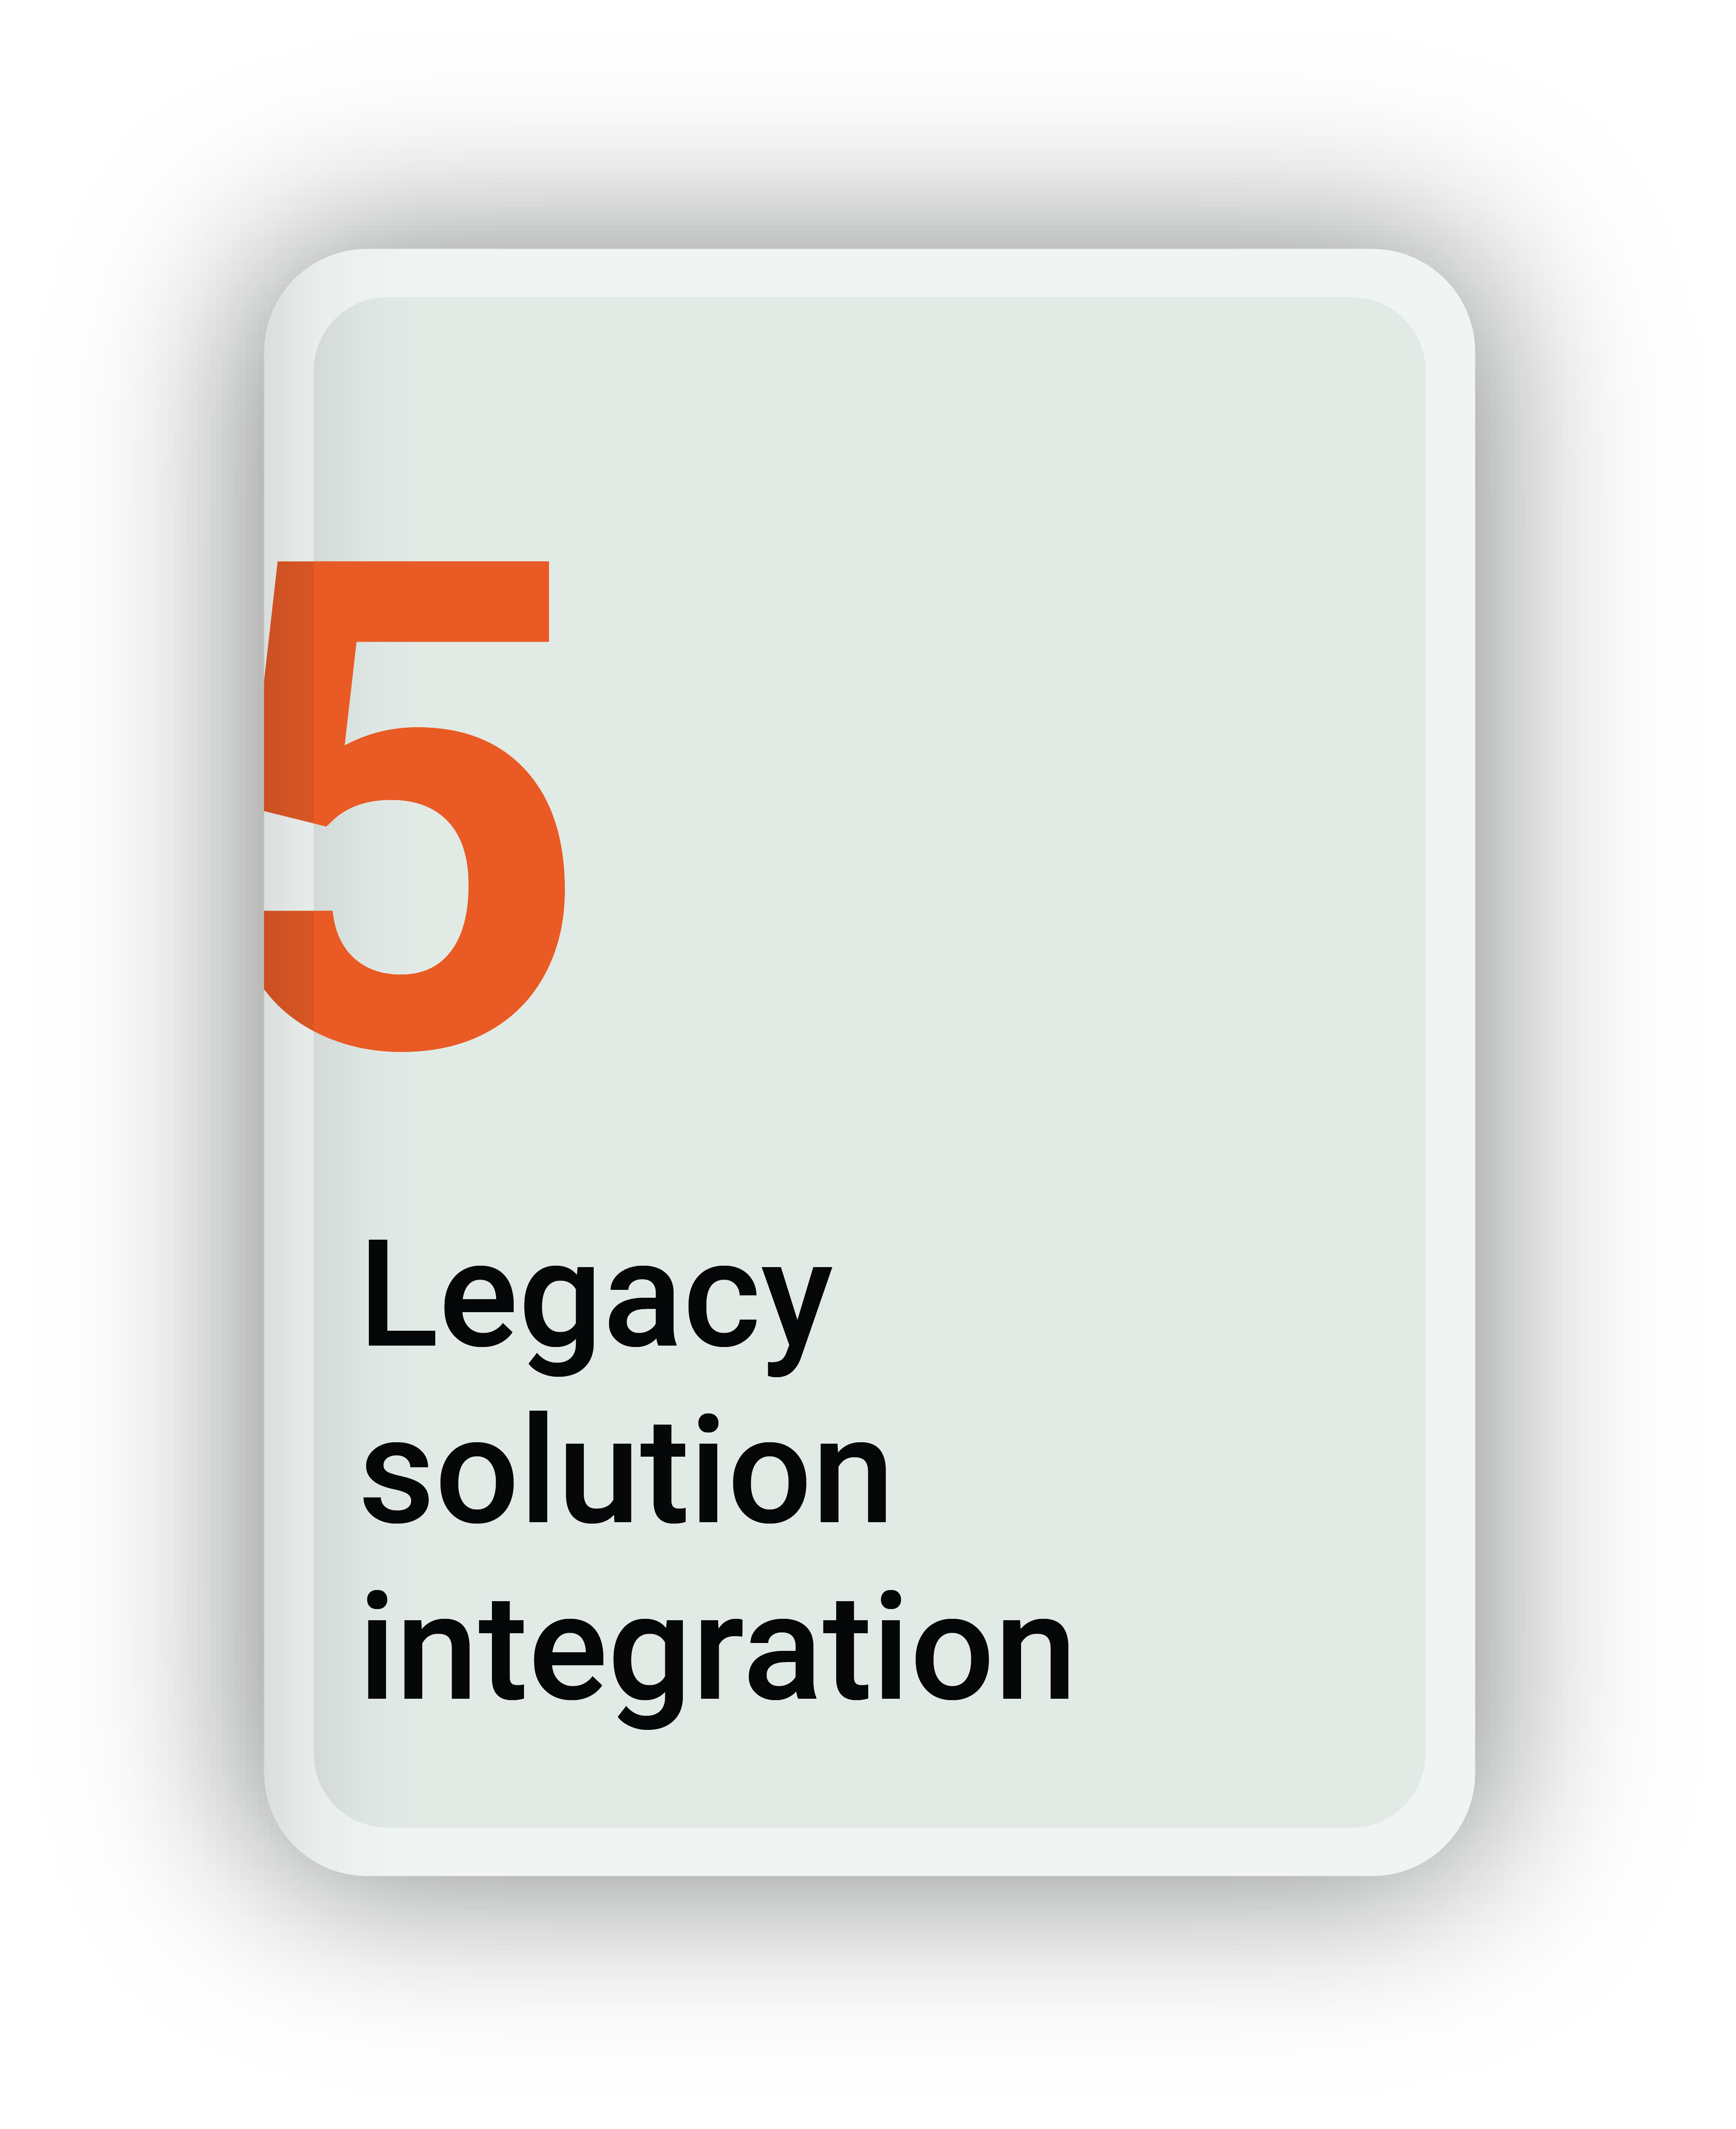 legacy solution integration